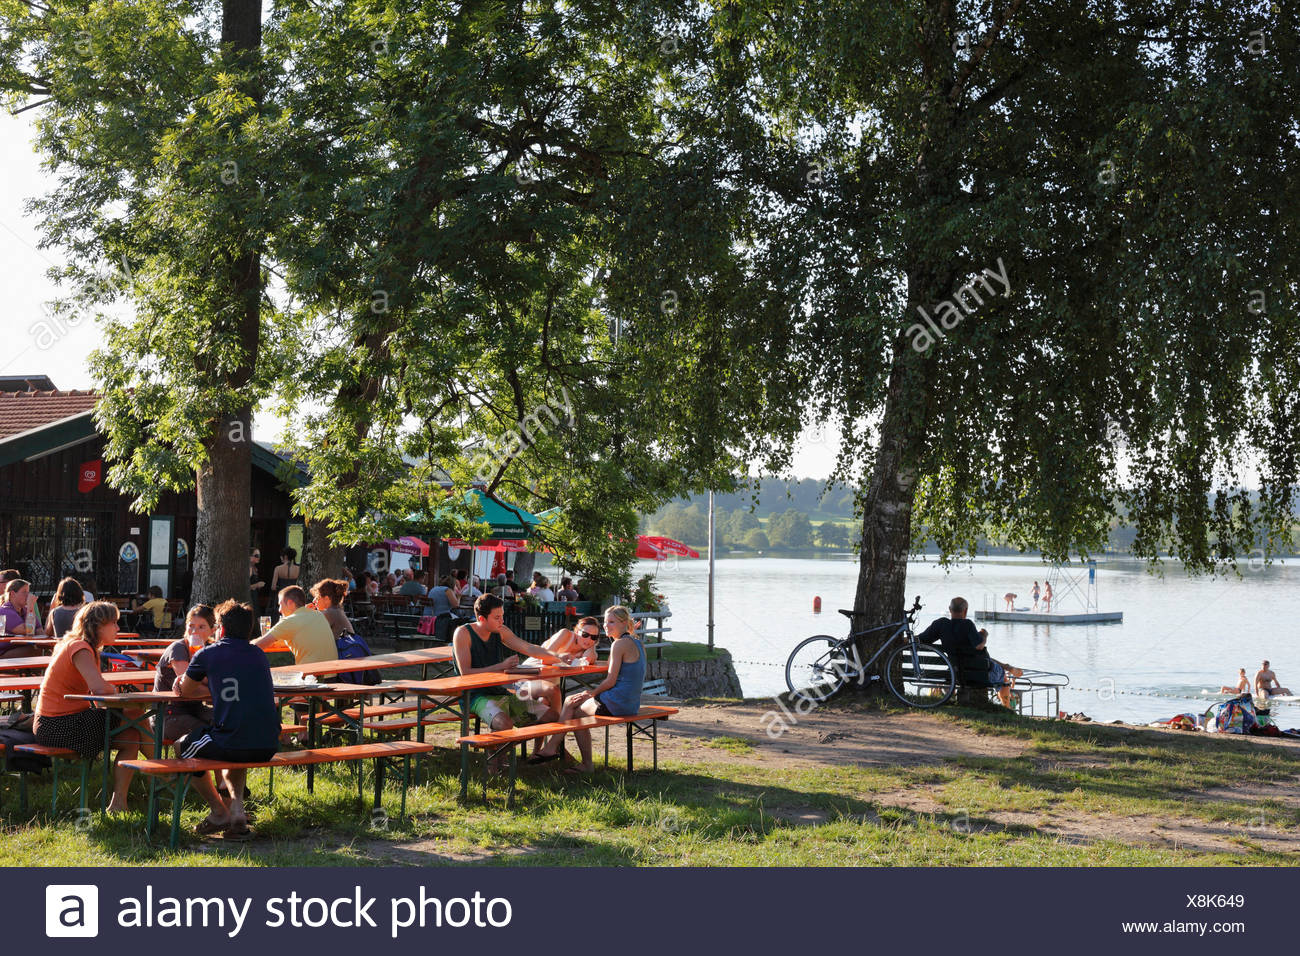 Guests in a beer garden, Strandbad Tengling, Lake Tachinger, Rupertiwinkel, Upper Bavaria, Bavaria, Germany, Europe - Stock Image